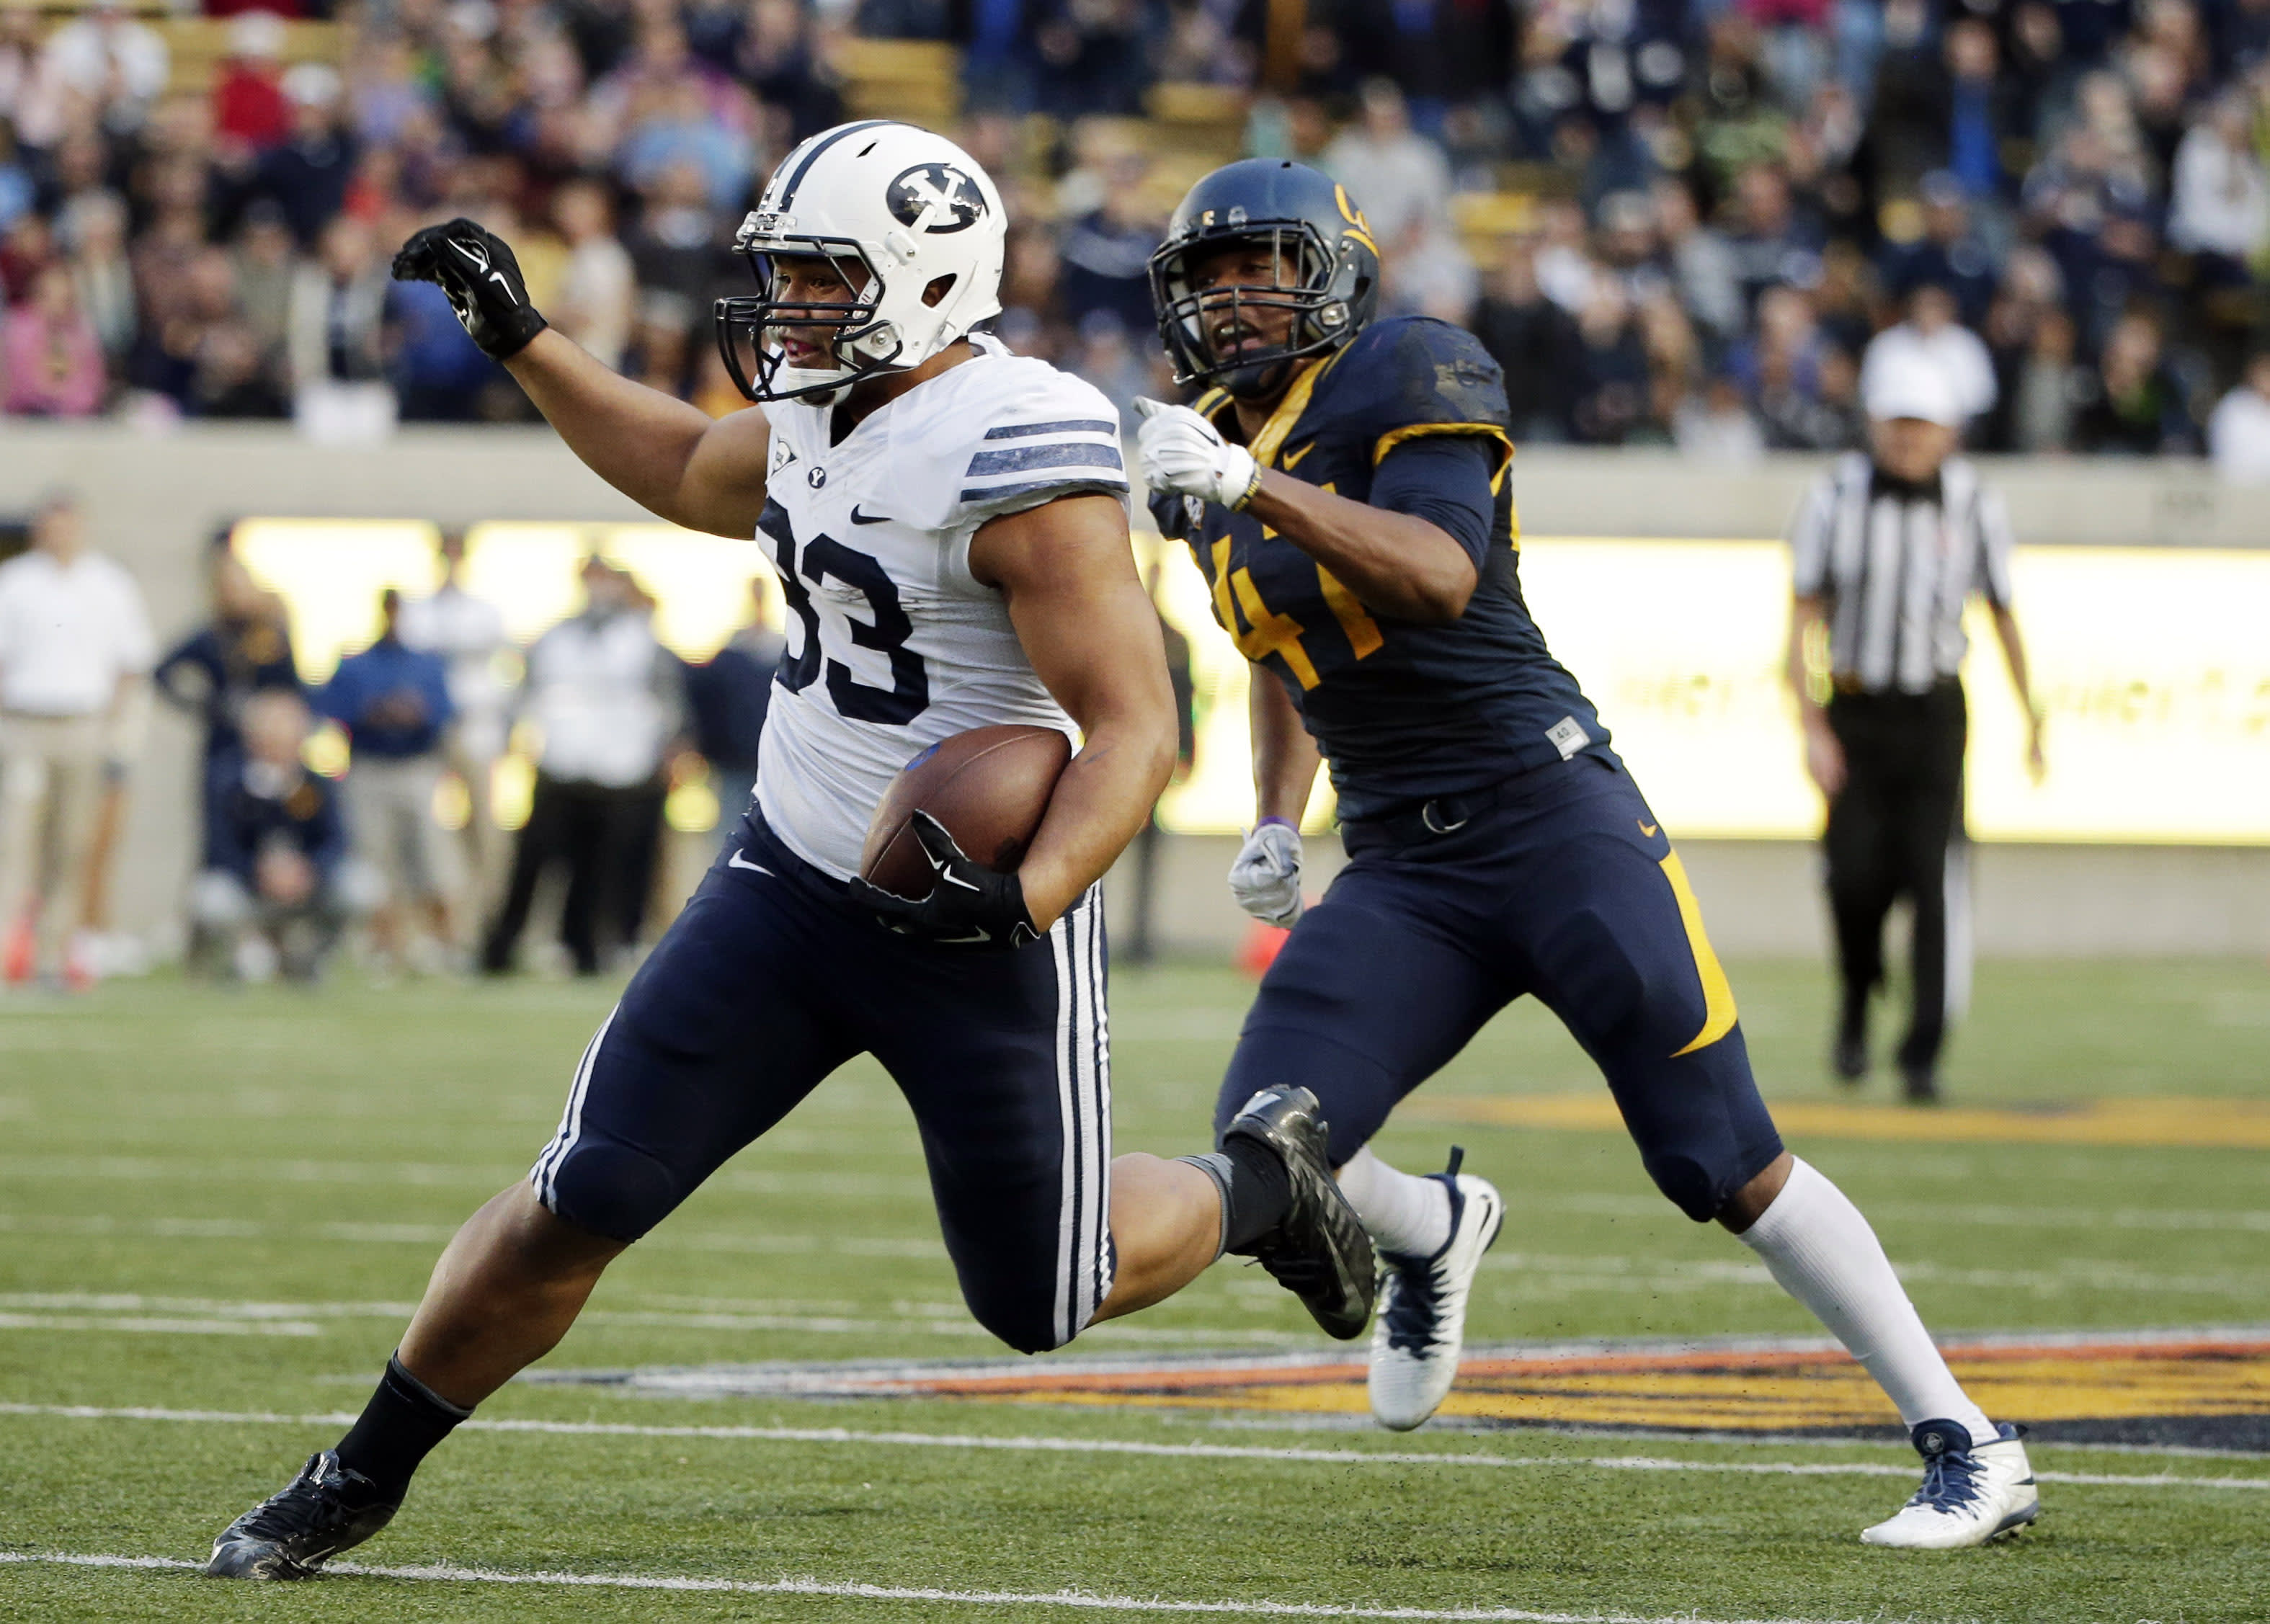 BYU running back Paul Lasike (33) runs past California linebacker Hardy Nickerson during the second half of an NCAA college football game, Saturday, Nov. 29, 2014, in Berkeley, Calif. BYU won 42-35. (AP Photo/Marcio Jose Sanchez)